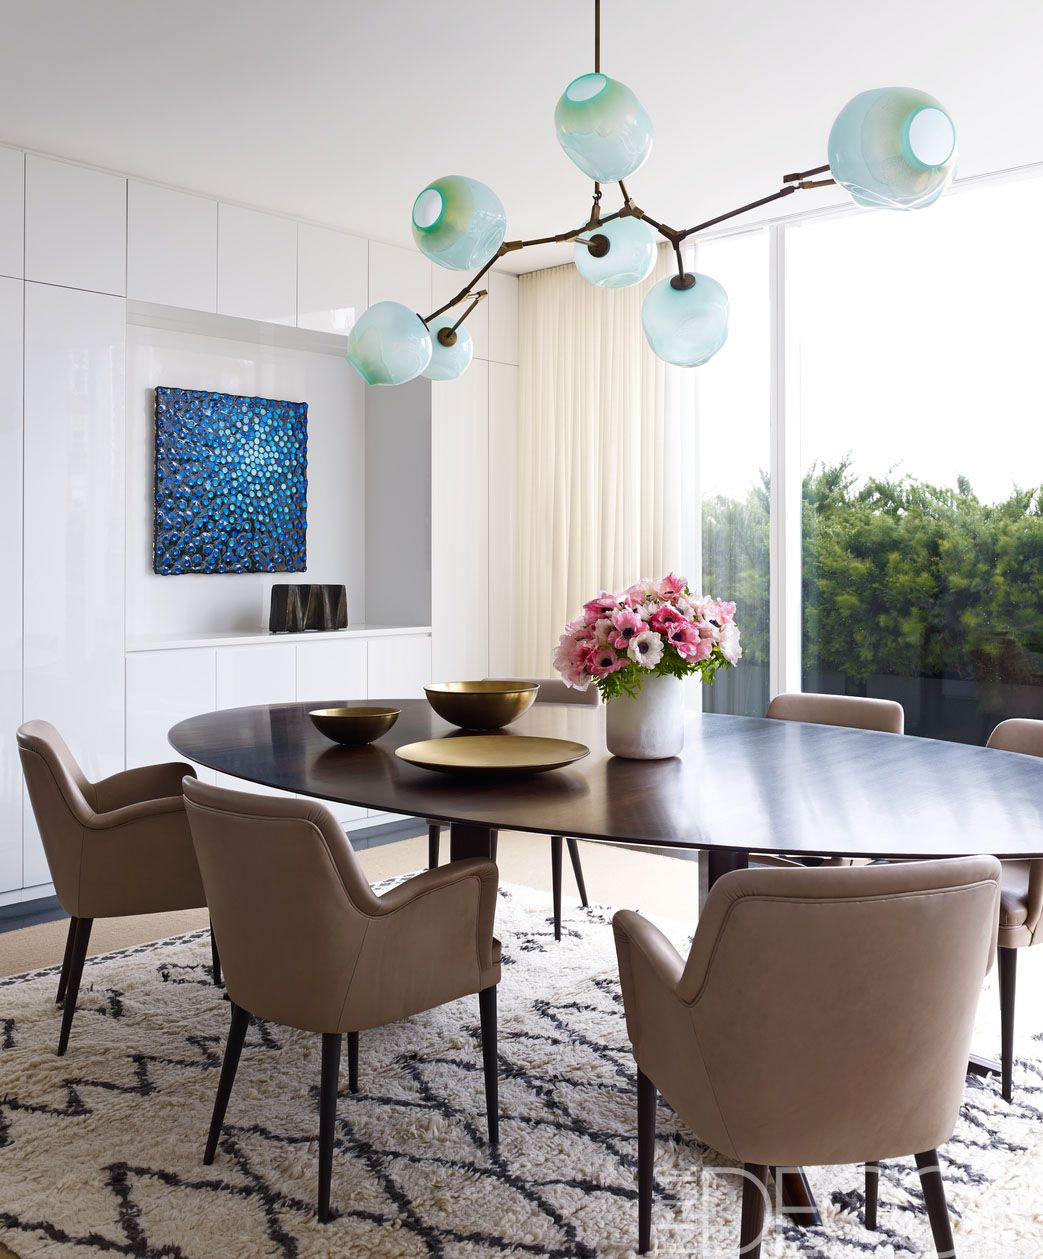 25 modern dining room decorating ideas contemporary dining room furniture - Dining Room Design Ideas